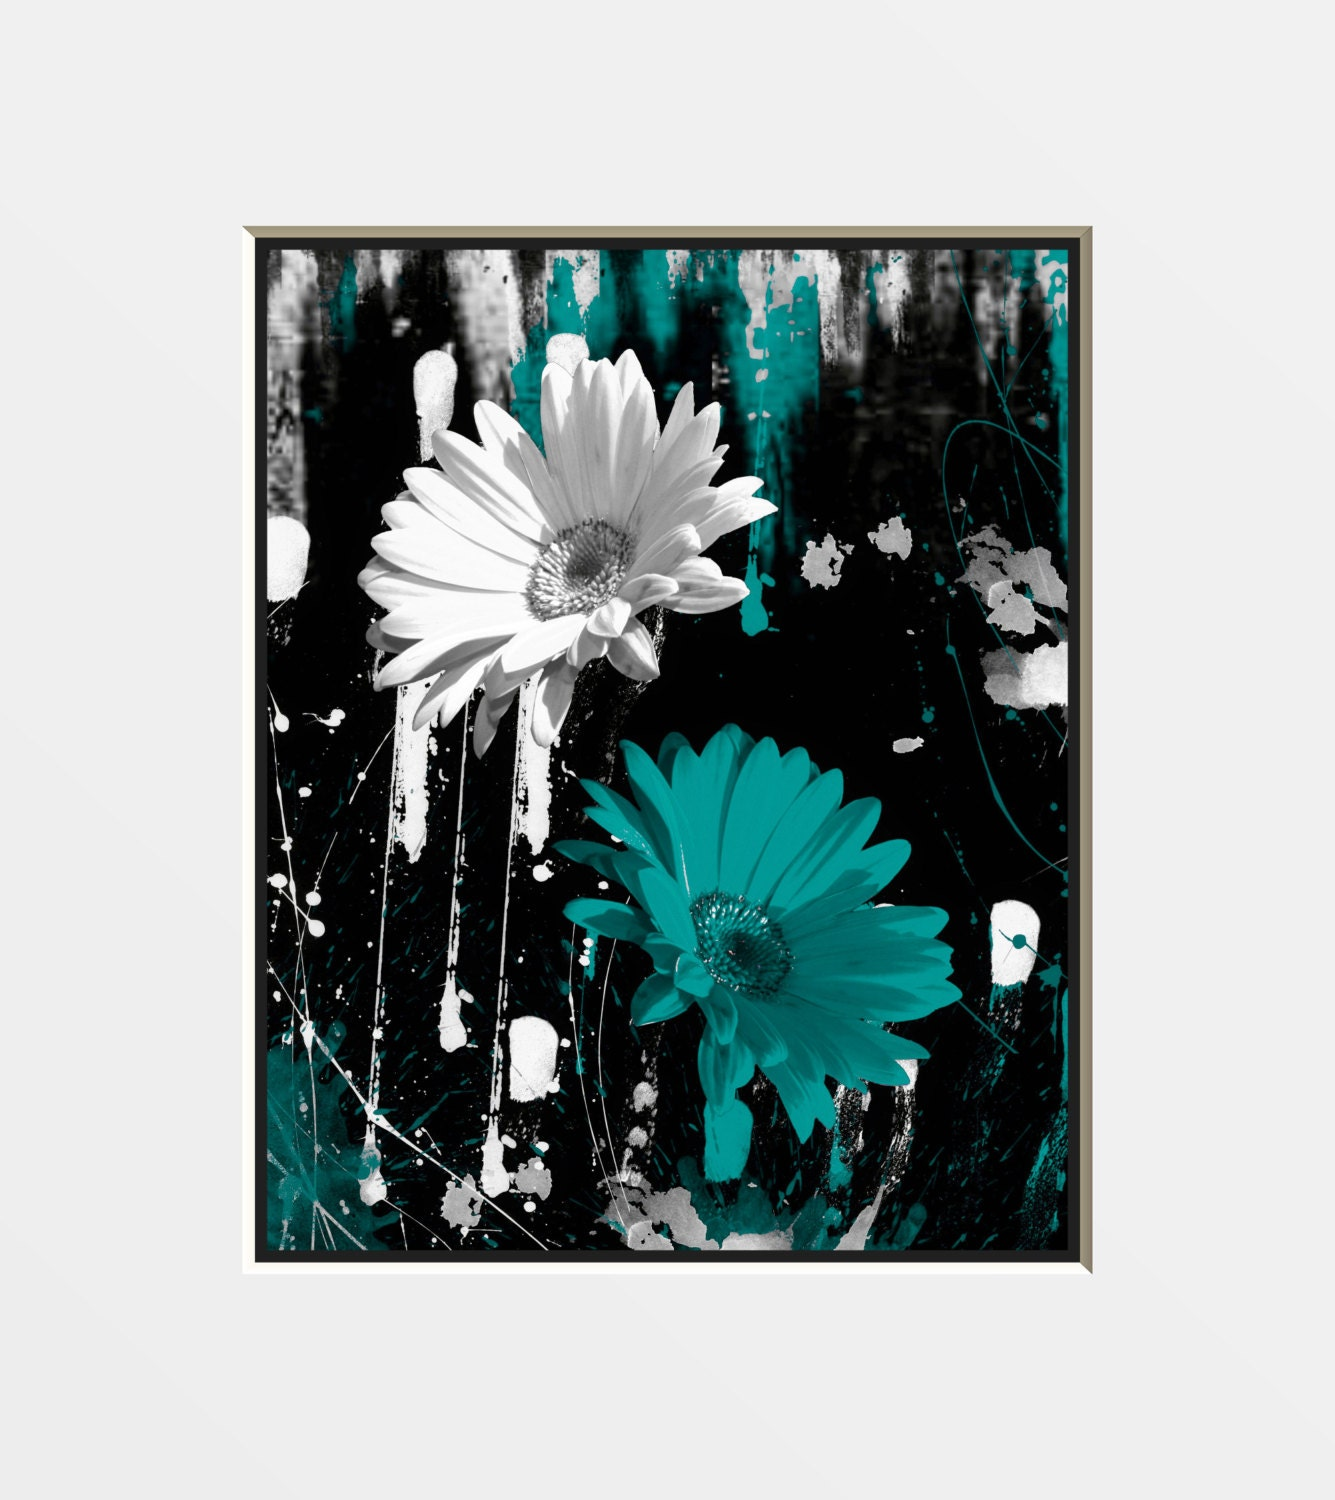 Items Similar To Teal Purple Abstract Flowers Wall Decor: Black White Teal Wall Art Photography Daisy Flower Modern